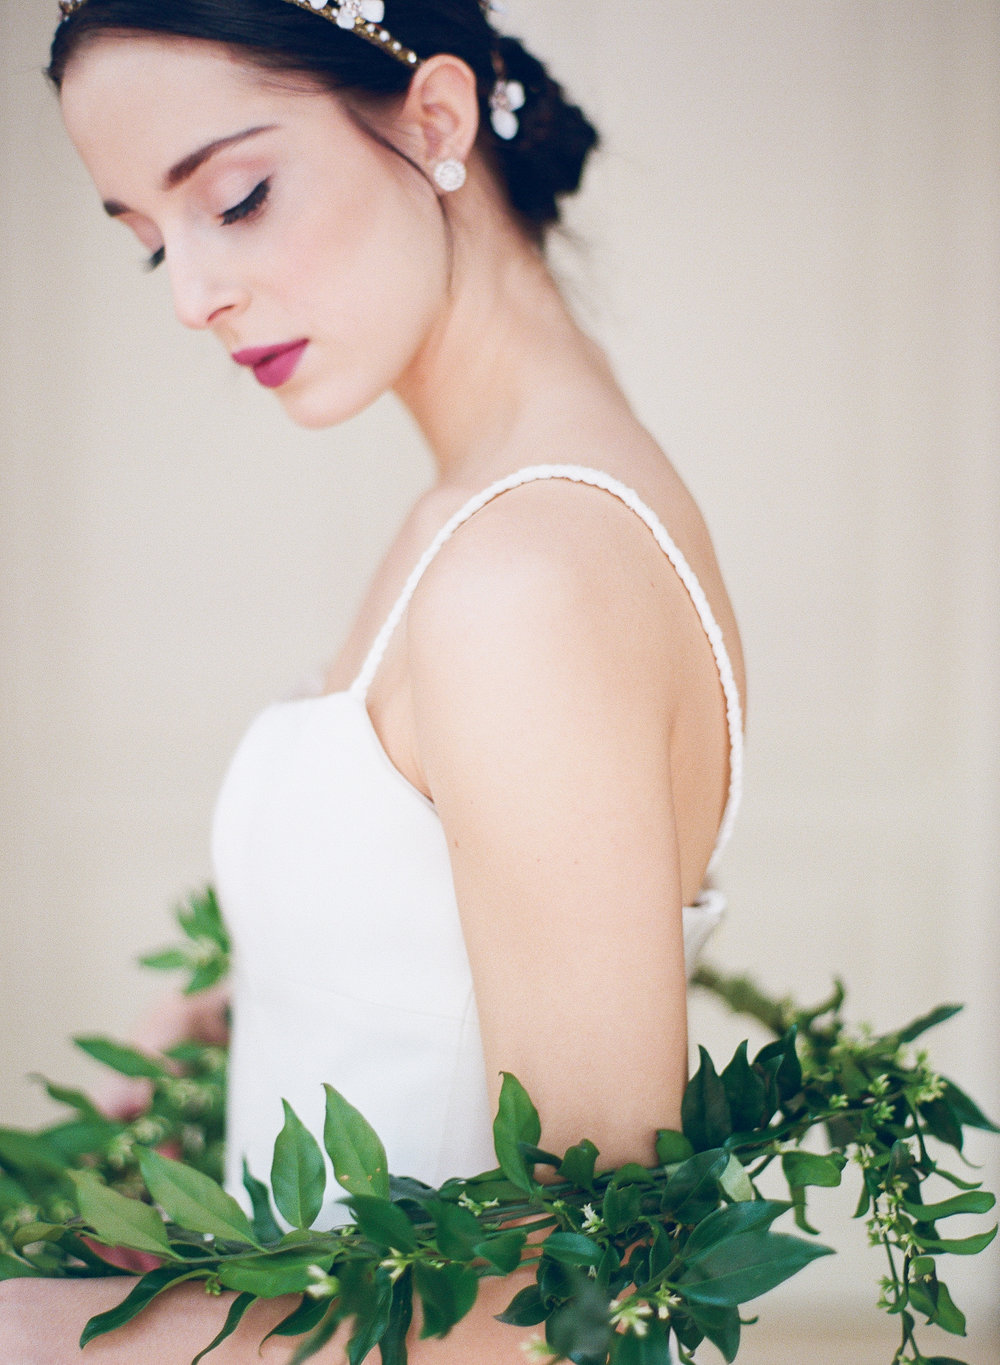 wedding hair and makeup | The Wildflowers is an event planning and design company inspiring stylish brides and grooms to dream a better dream for their wedding day. Follow along on instagram: @ thewildflowers_com